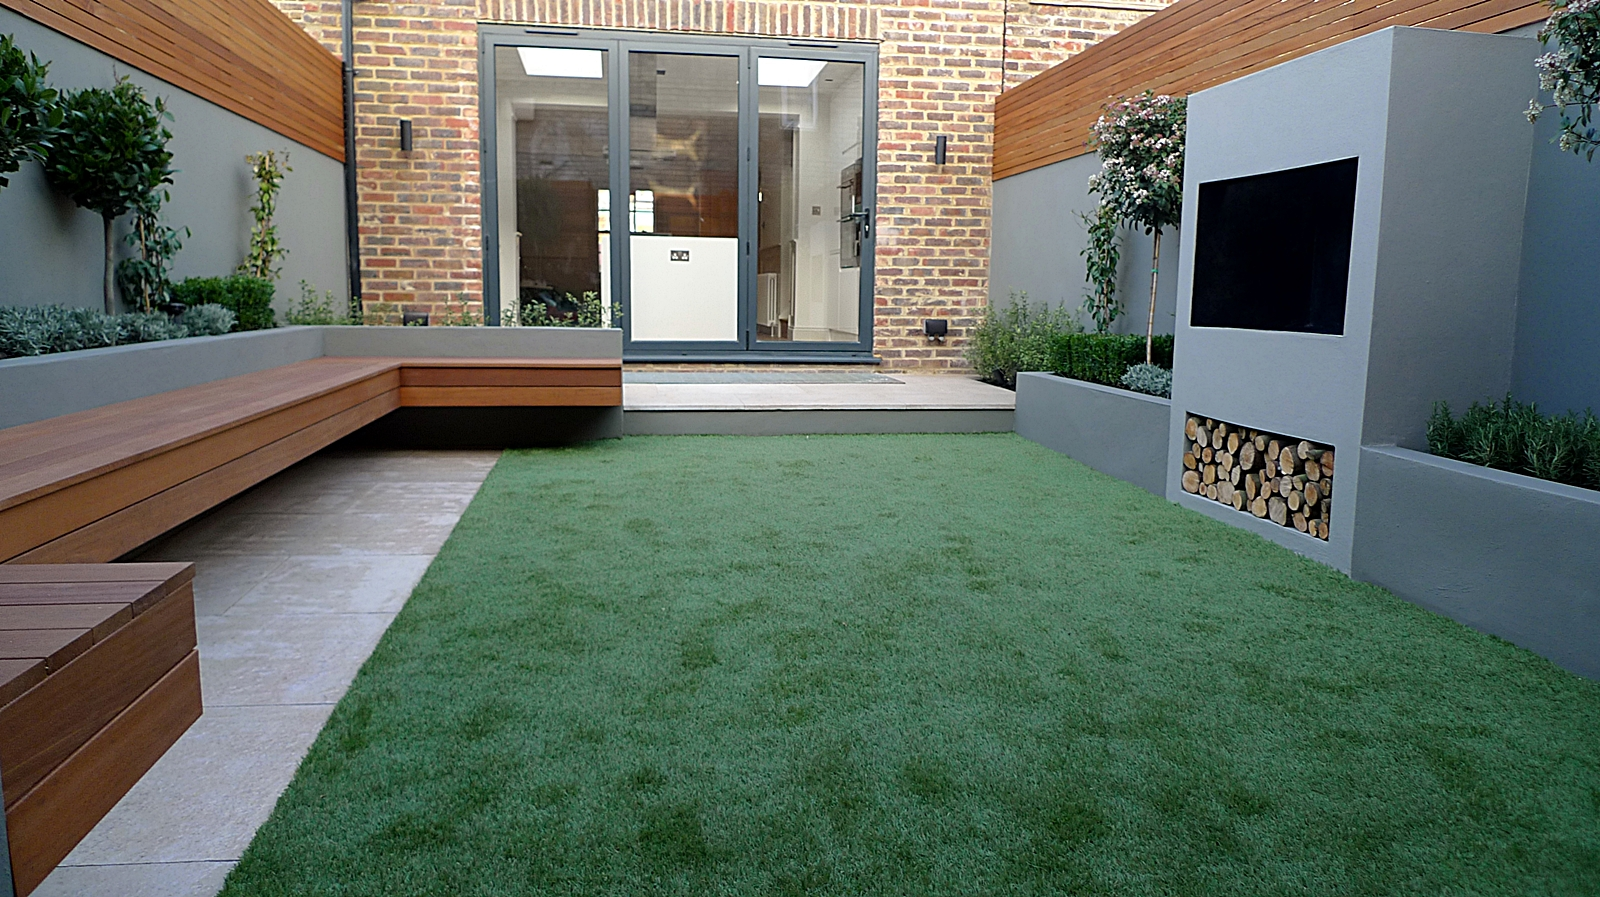 Garden Design Artificial Grass top 30 { assorted garden grass design }| more than 50 beautiful